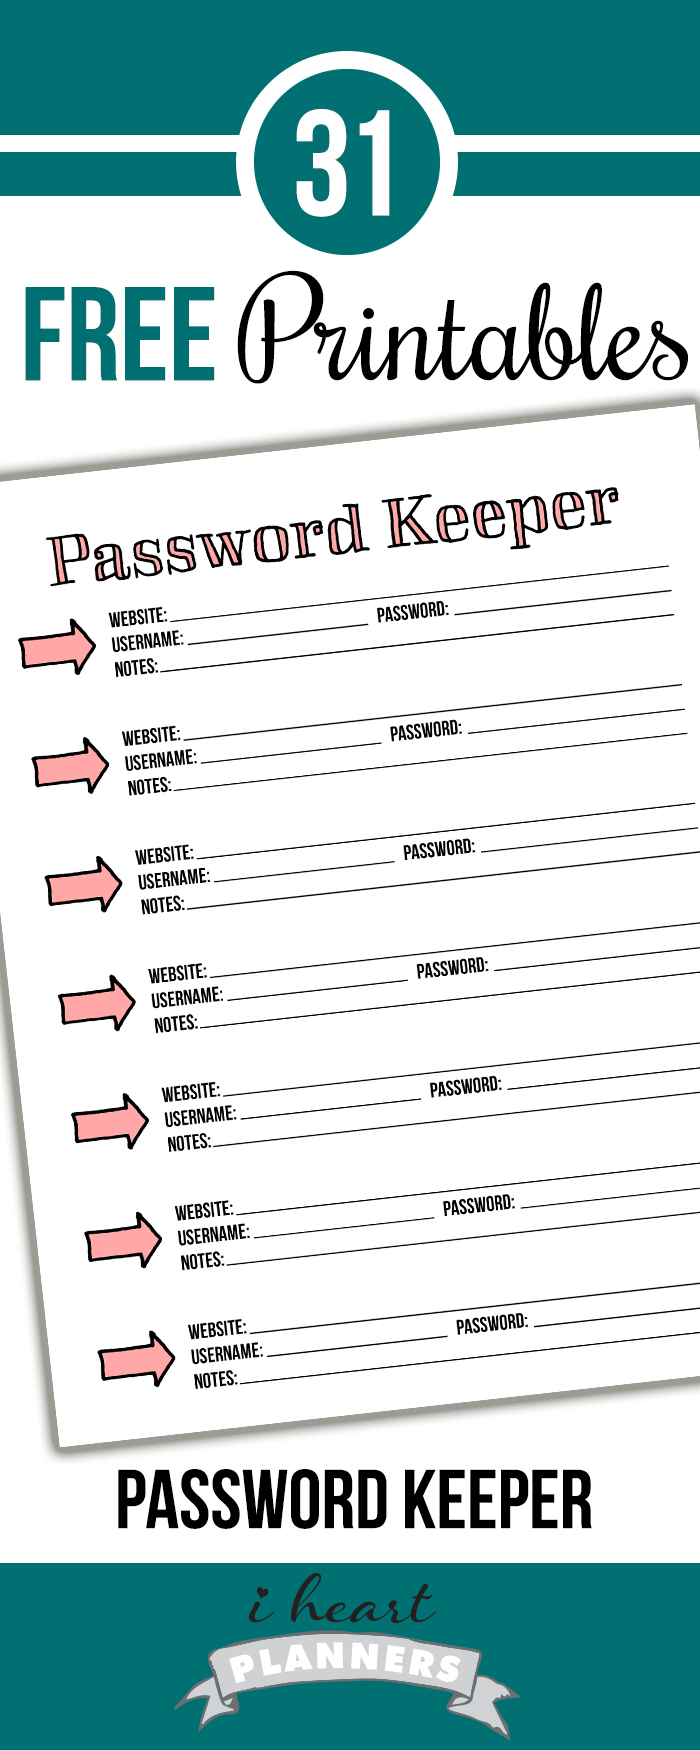 Day 6: Password Keeper - I Heart Planners Within Free Printable Password Keeper